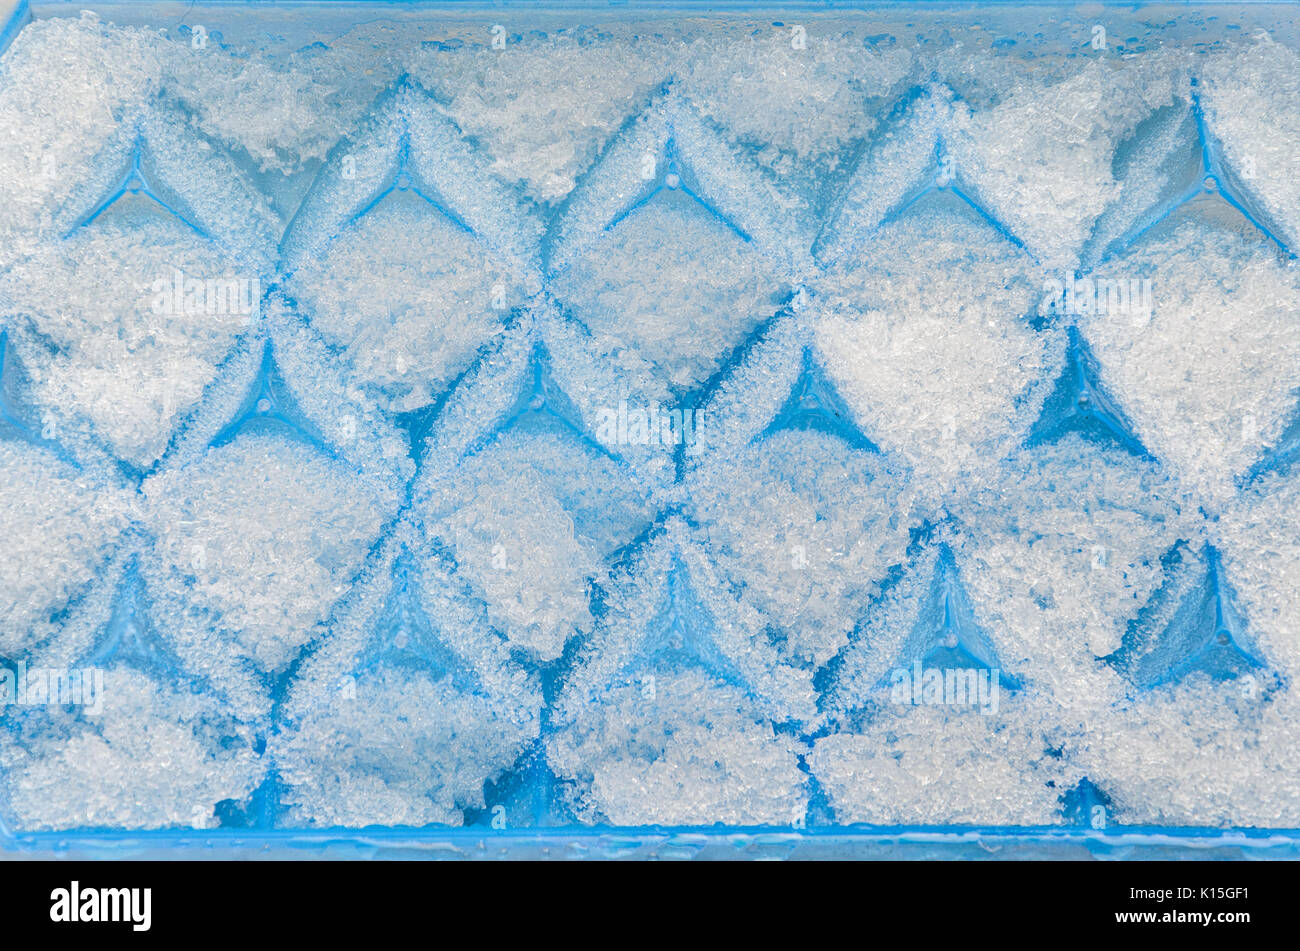 Blue tray for making ice cubes. - Stock Image